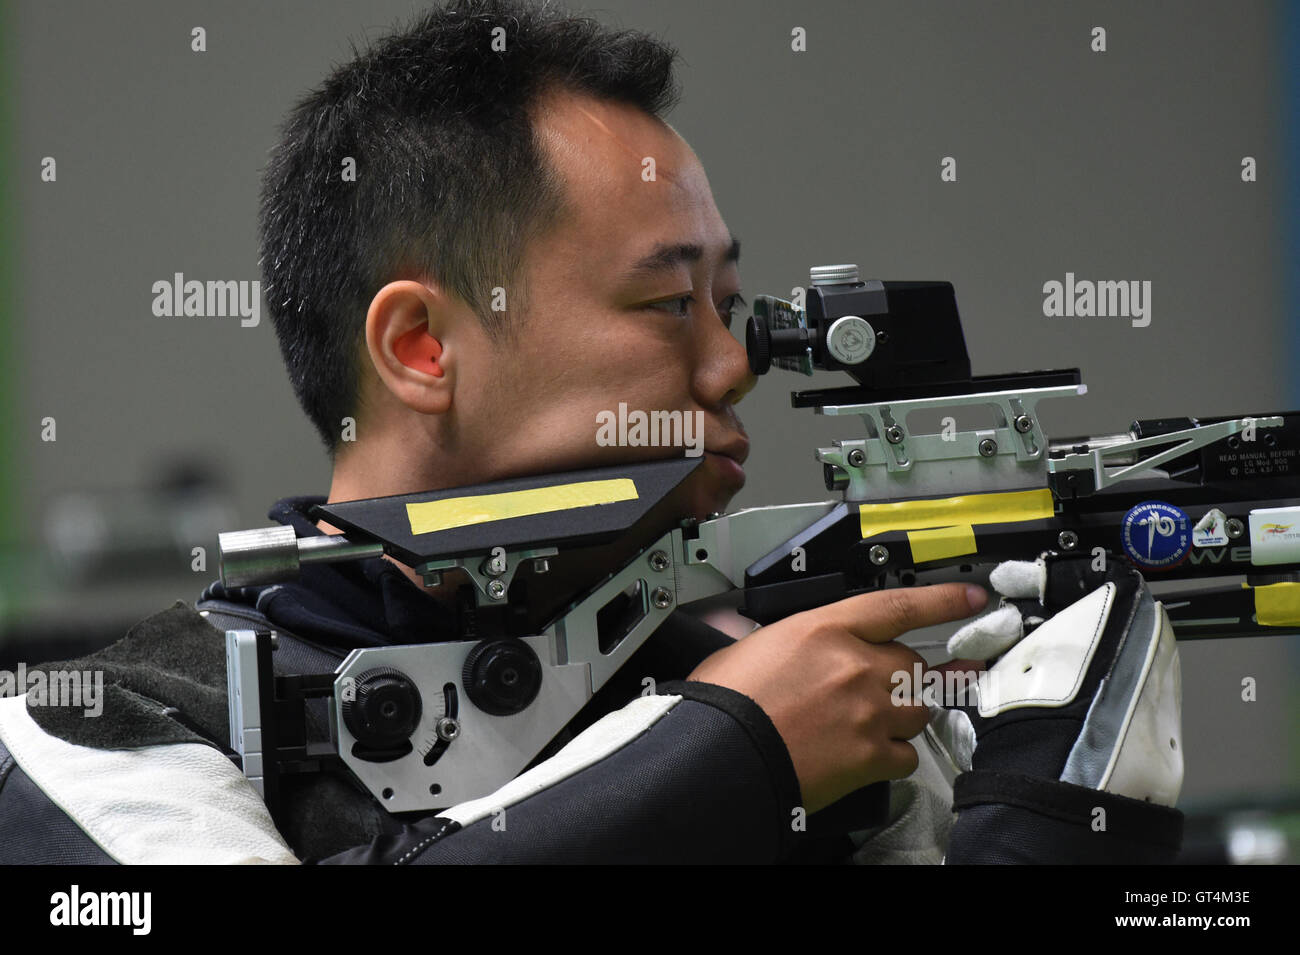 Rio De Janeiro. 8th Sep, 2016. Dong Chao of China competes during Men's R1 10m Air Rifle Standing SH1 Final - Stock Image